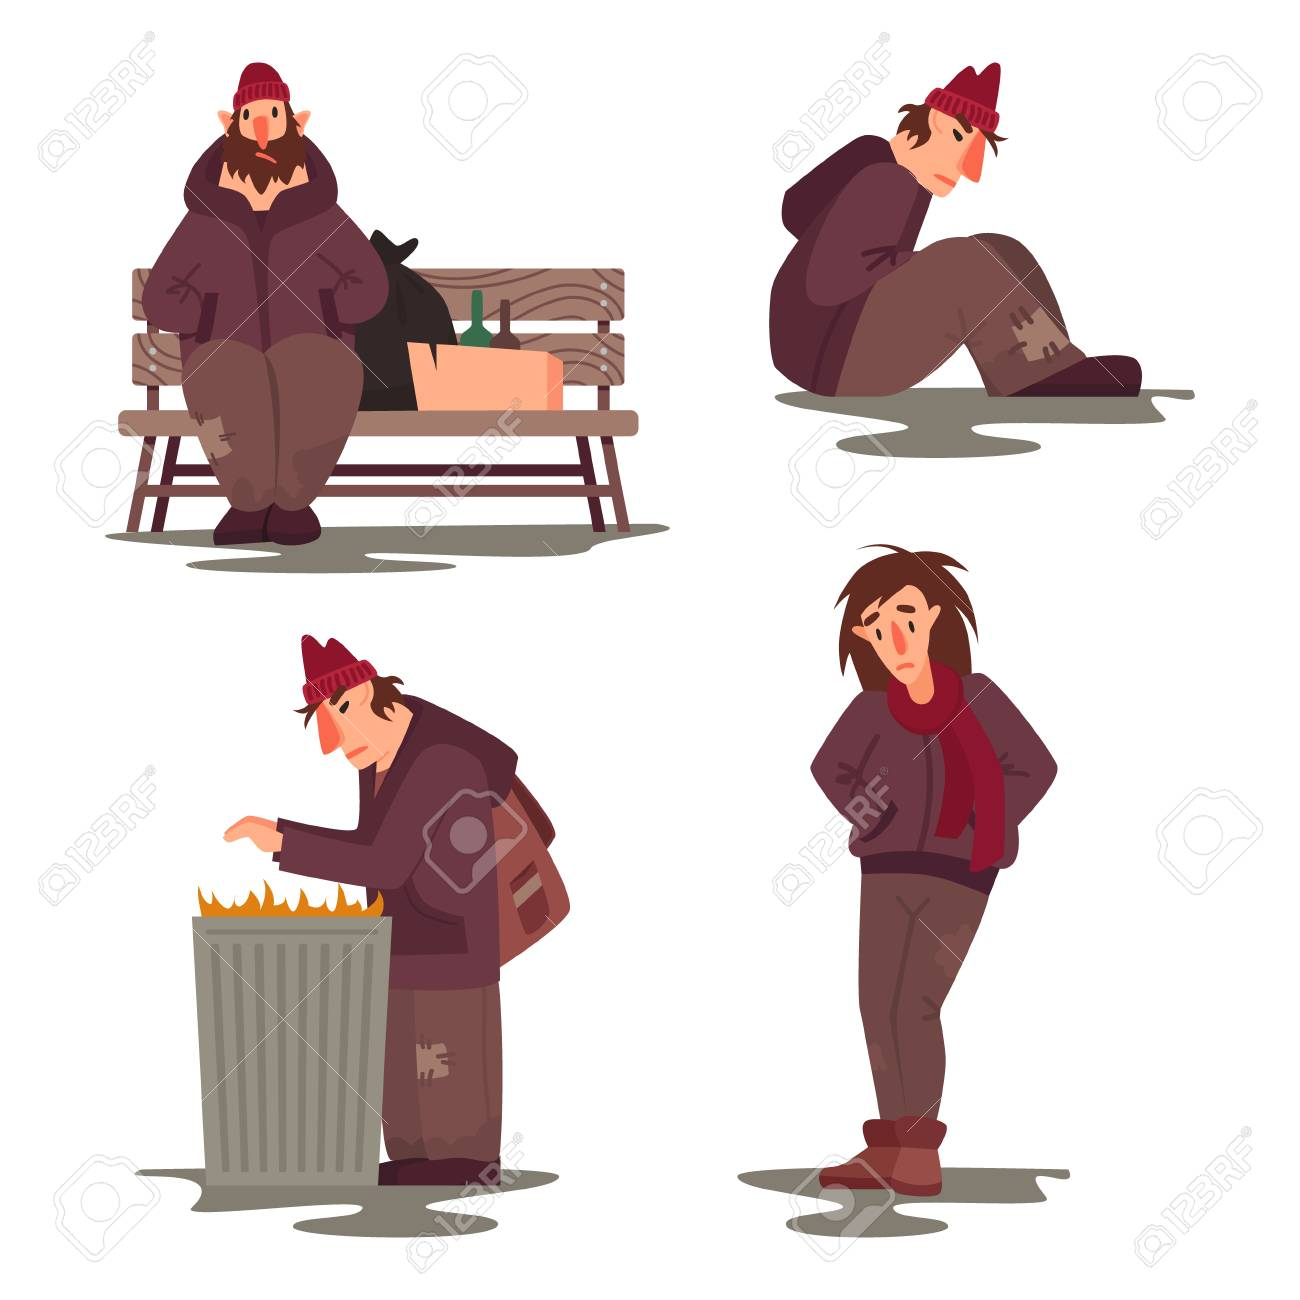 Homeless people vector characters set  Flat style illustration